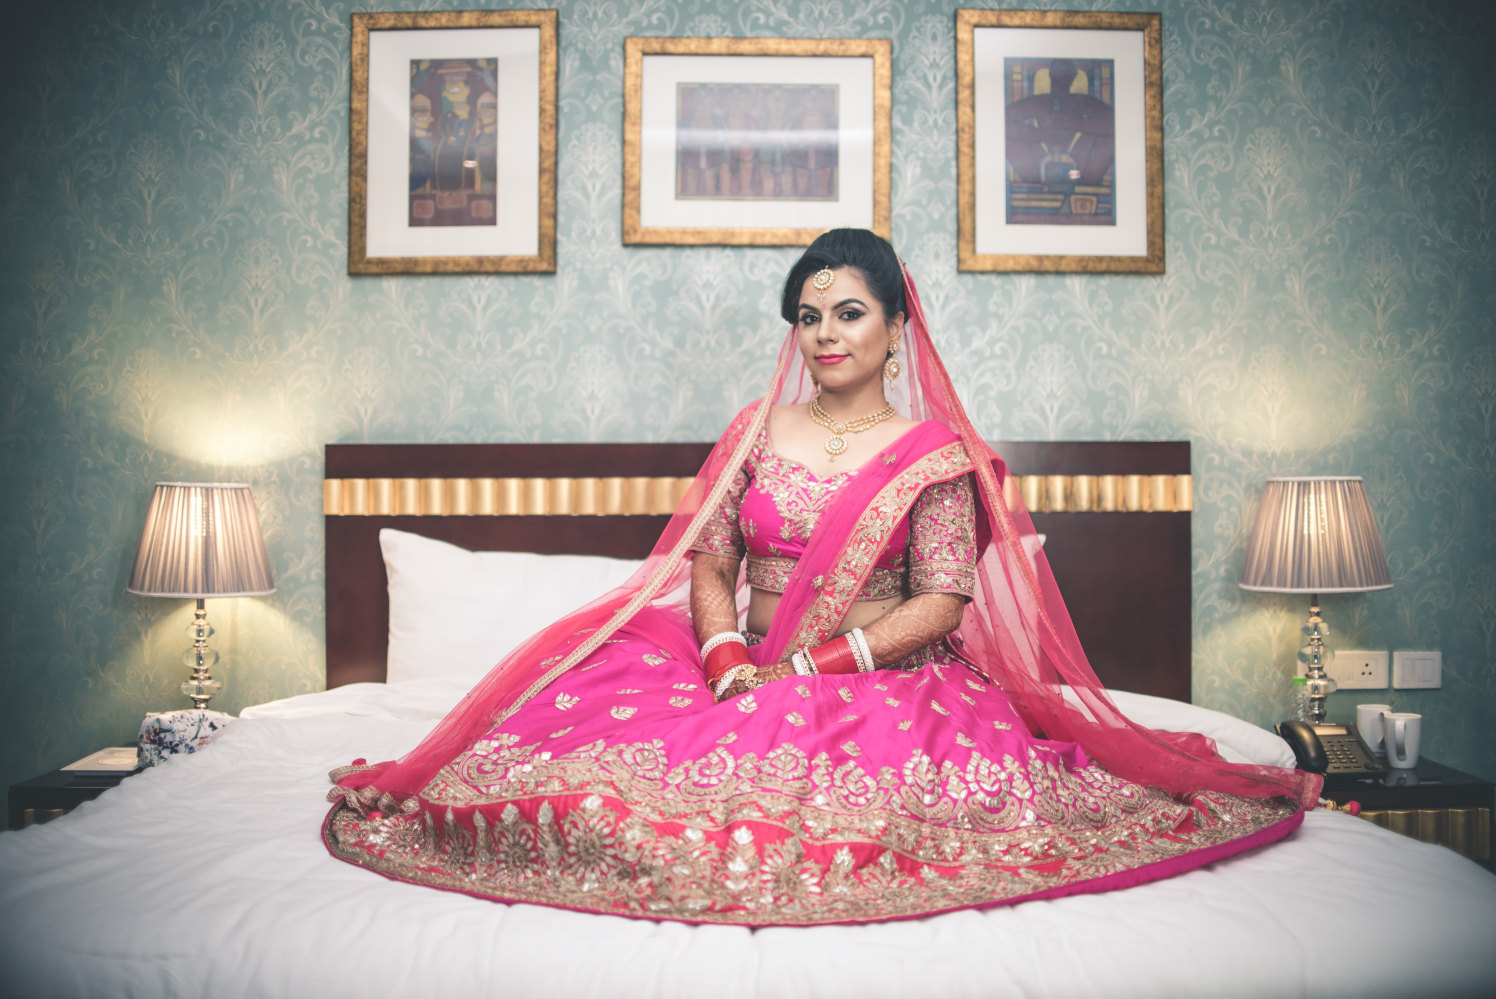 The Princess In Pink by Amish Photography Wedding-photography | Weddings Photos & Ideas